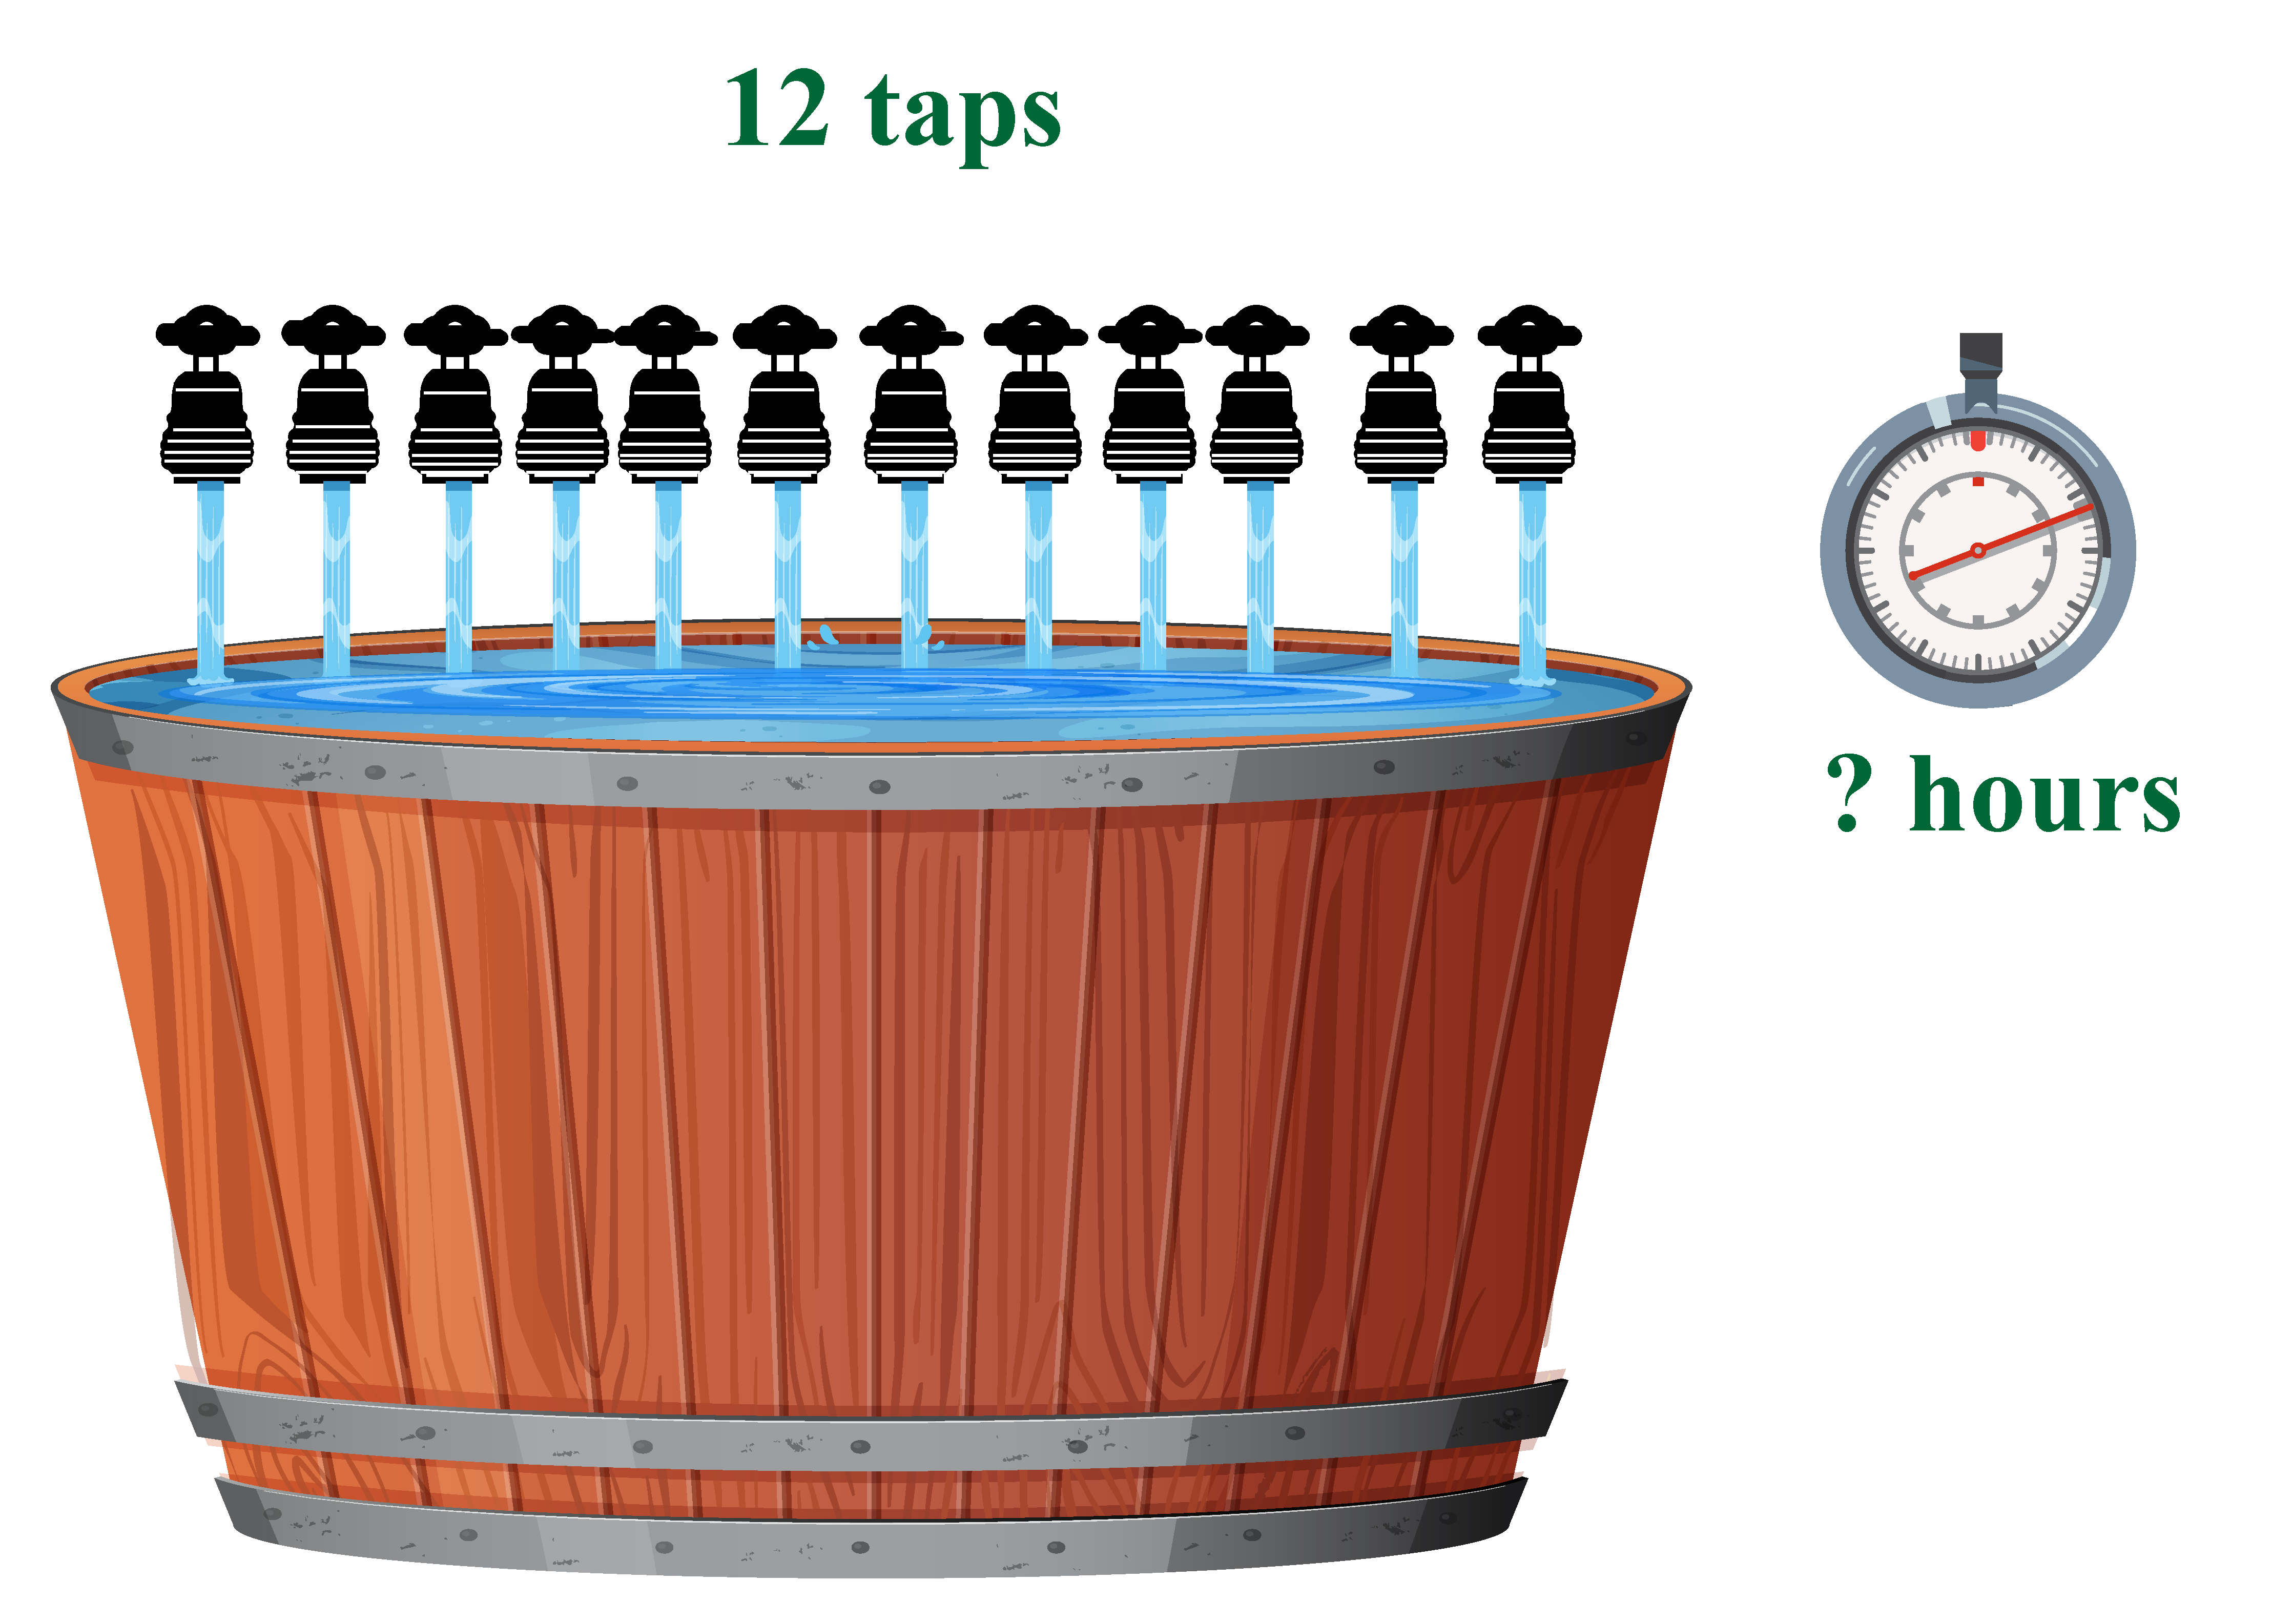 12 taps fill the same tank in how many hours?